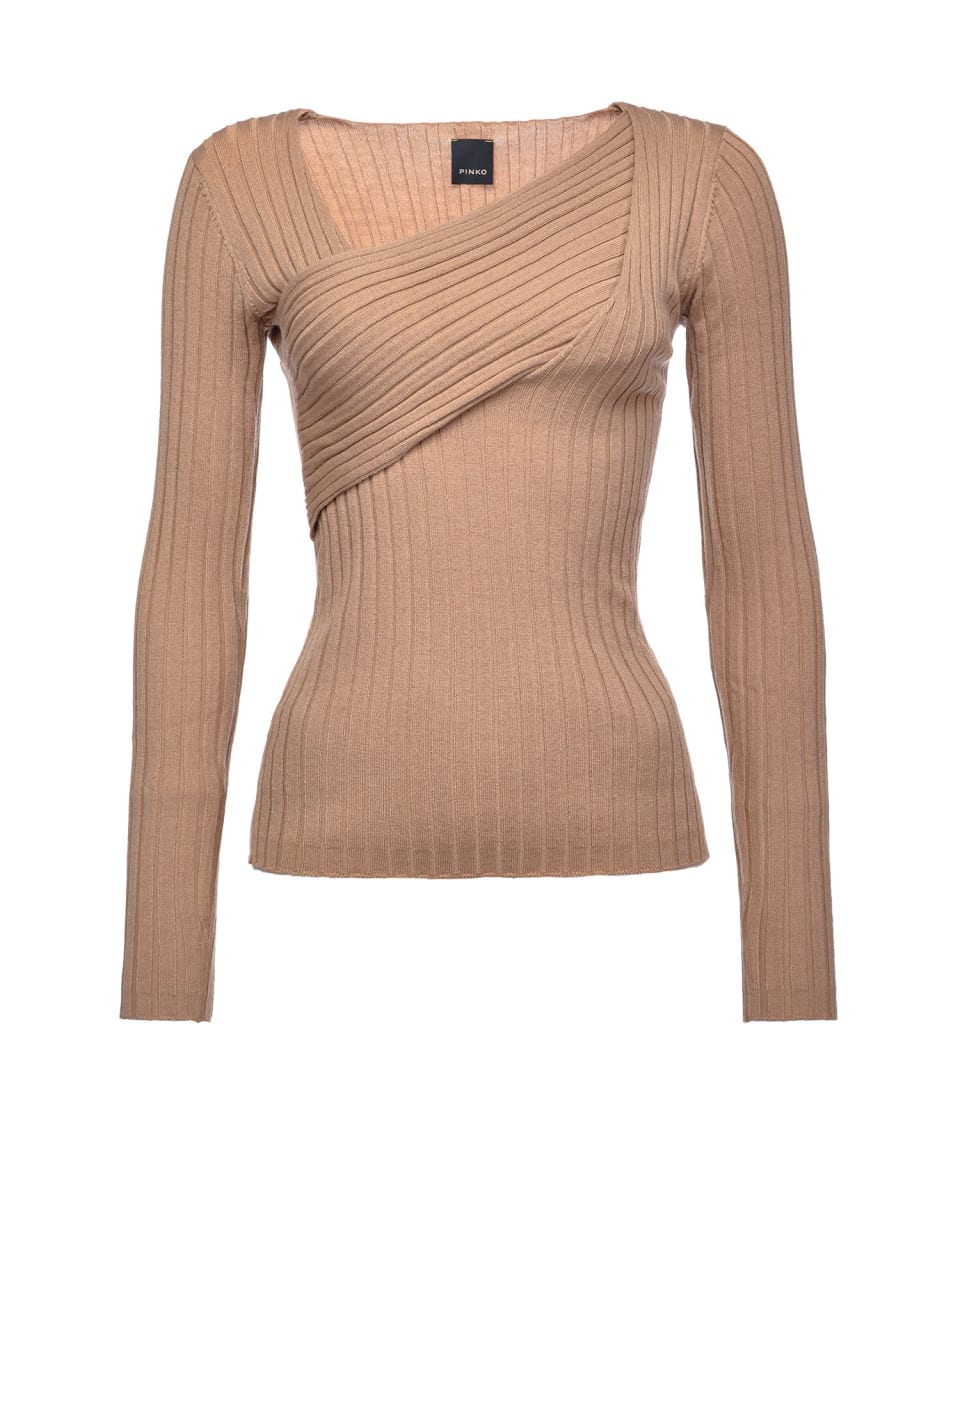 Rib knit top with crossover detail - Pinko